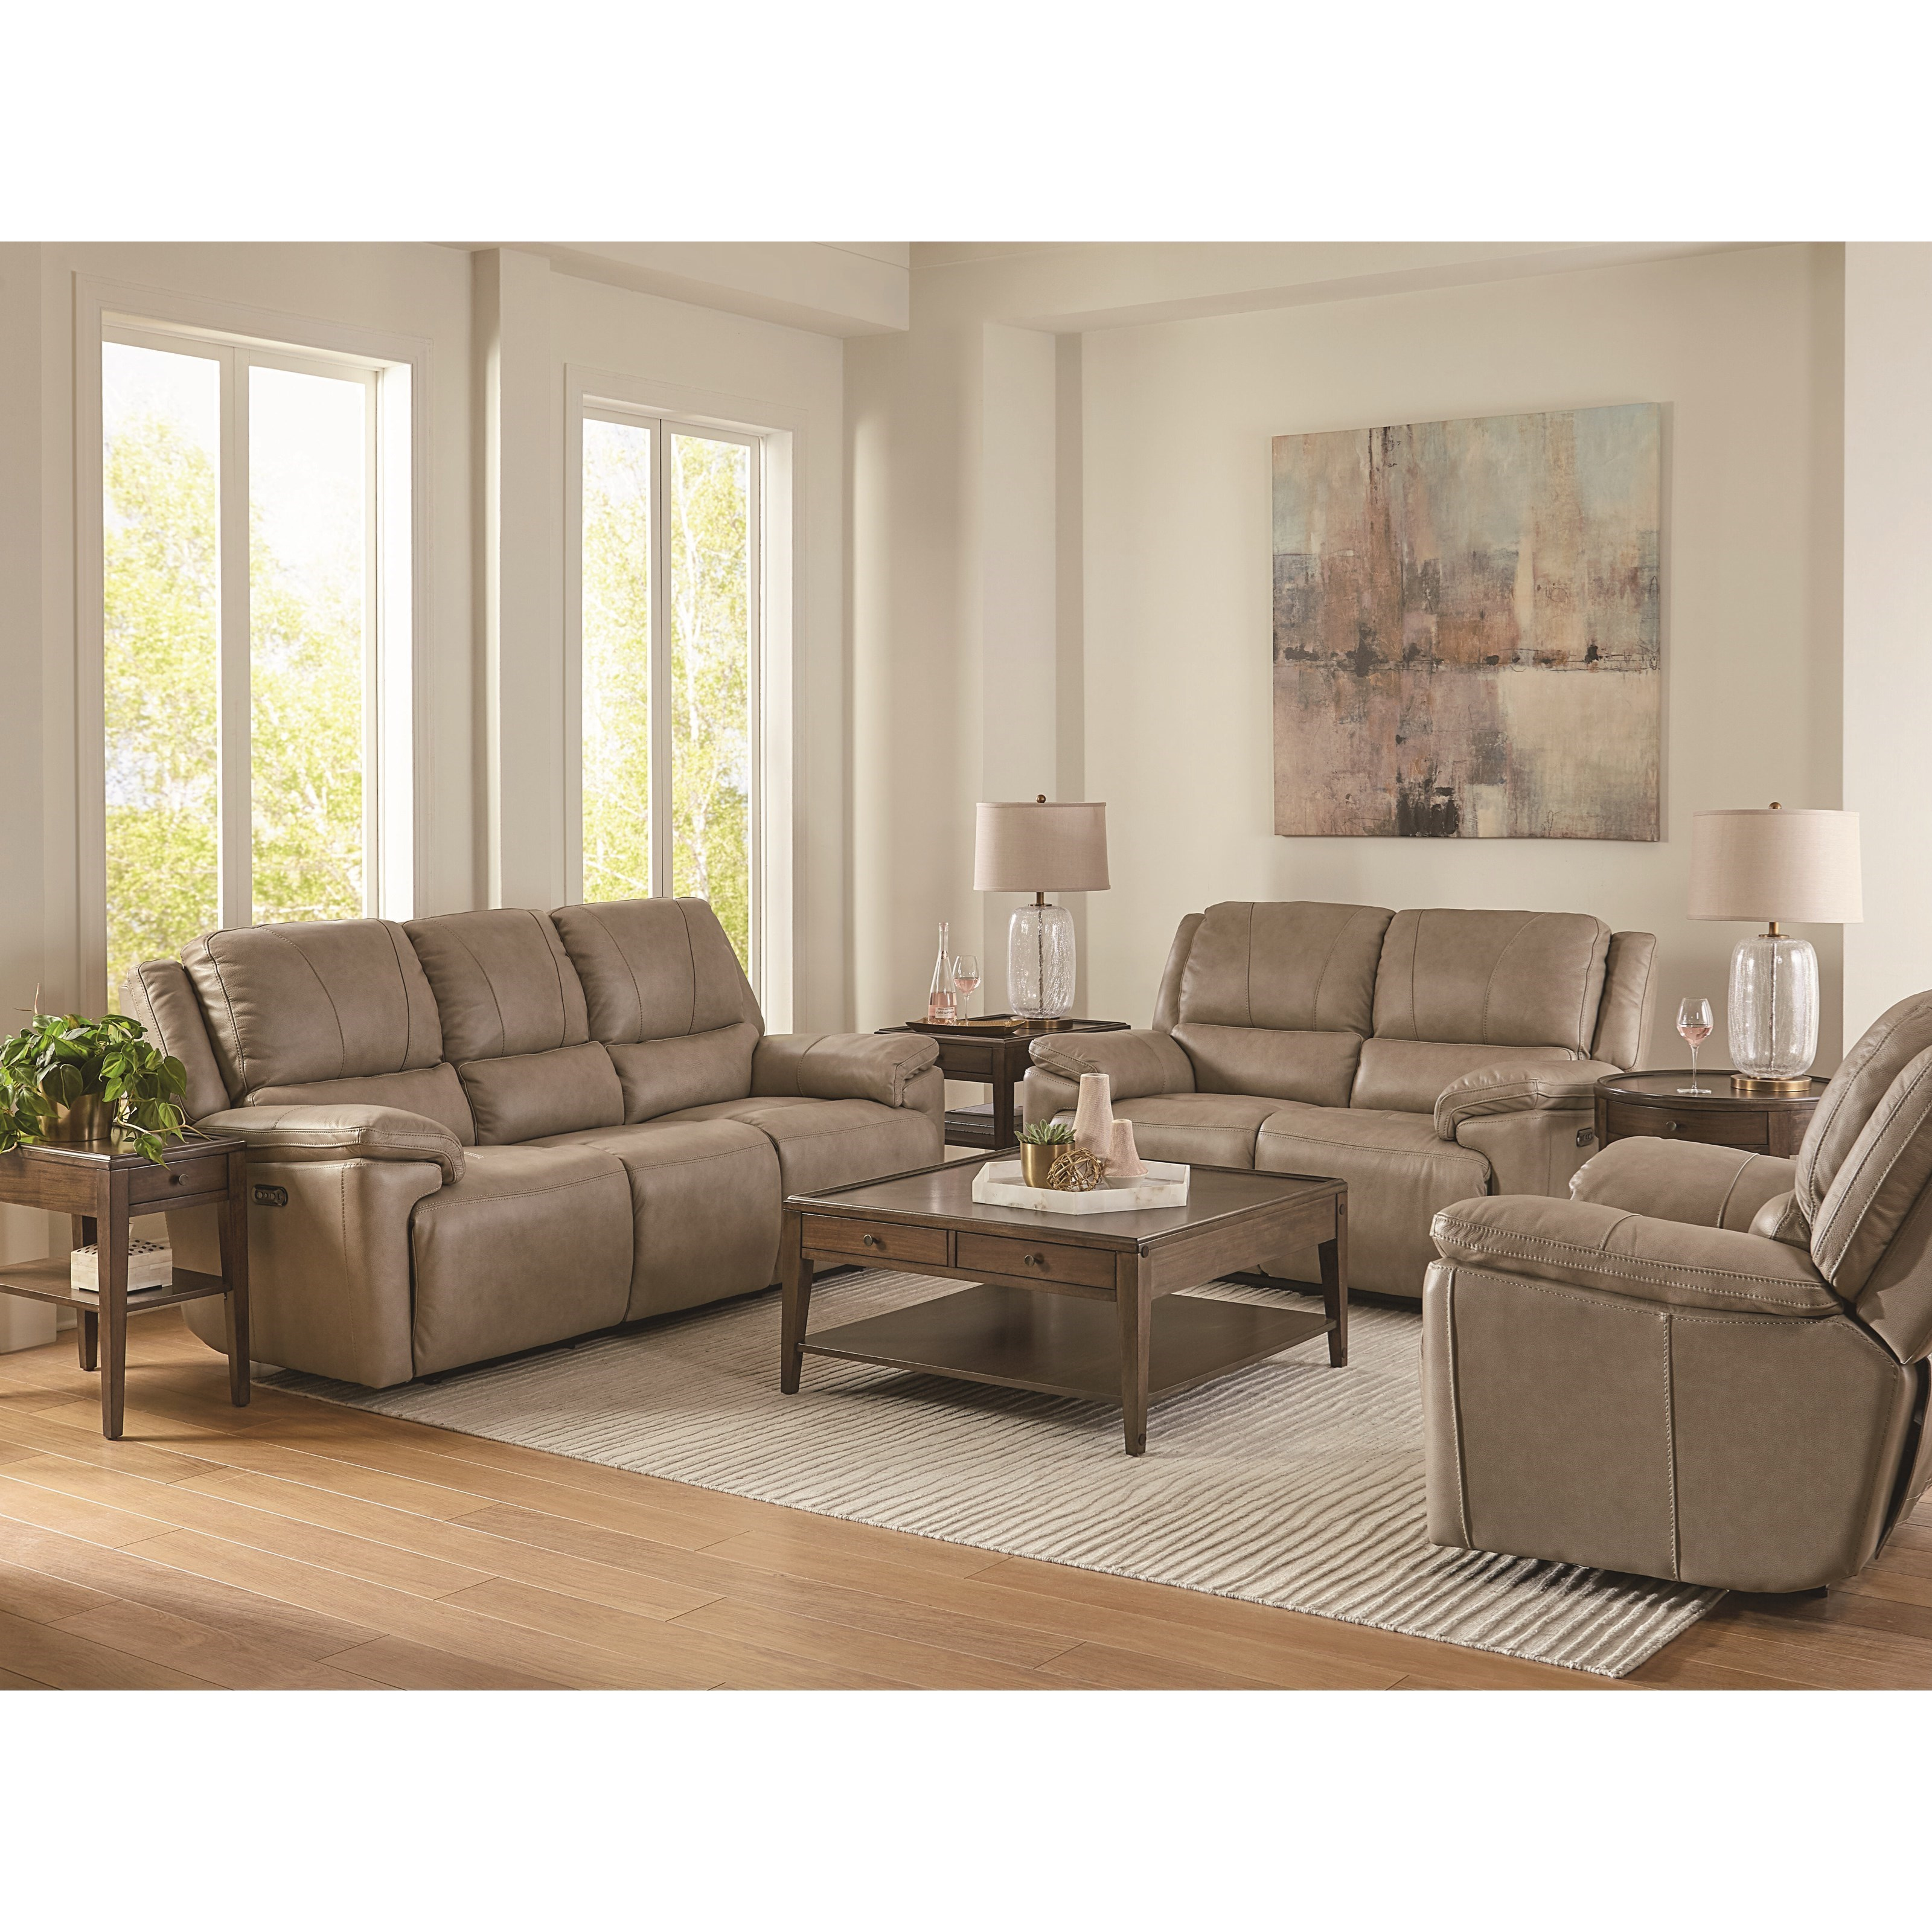 Picture of: Bassett Club Level Colton Casual Power Reclining Sofa With Adjustable Headrests And Usb Ports Wayside Furniture Reclining Sofas